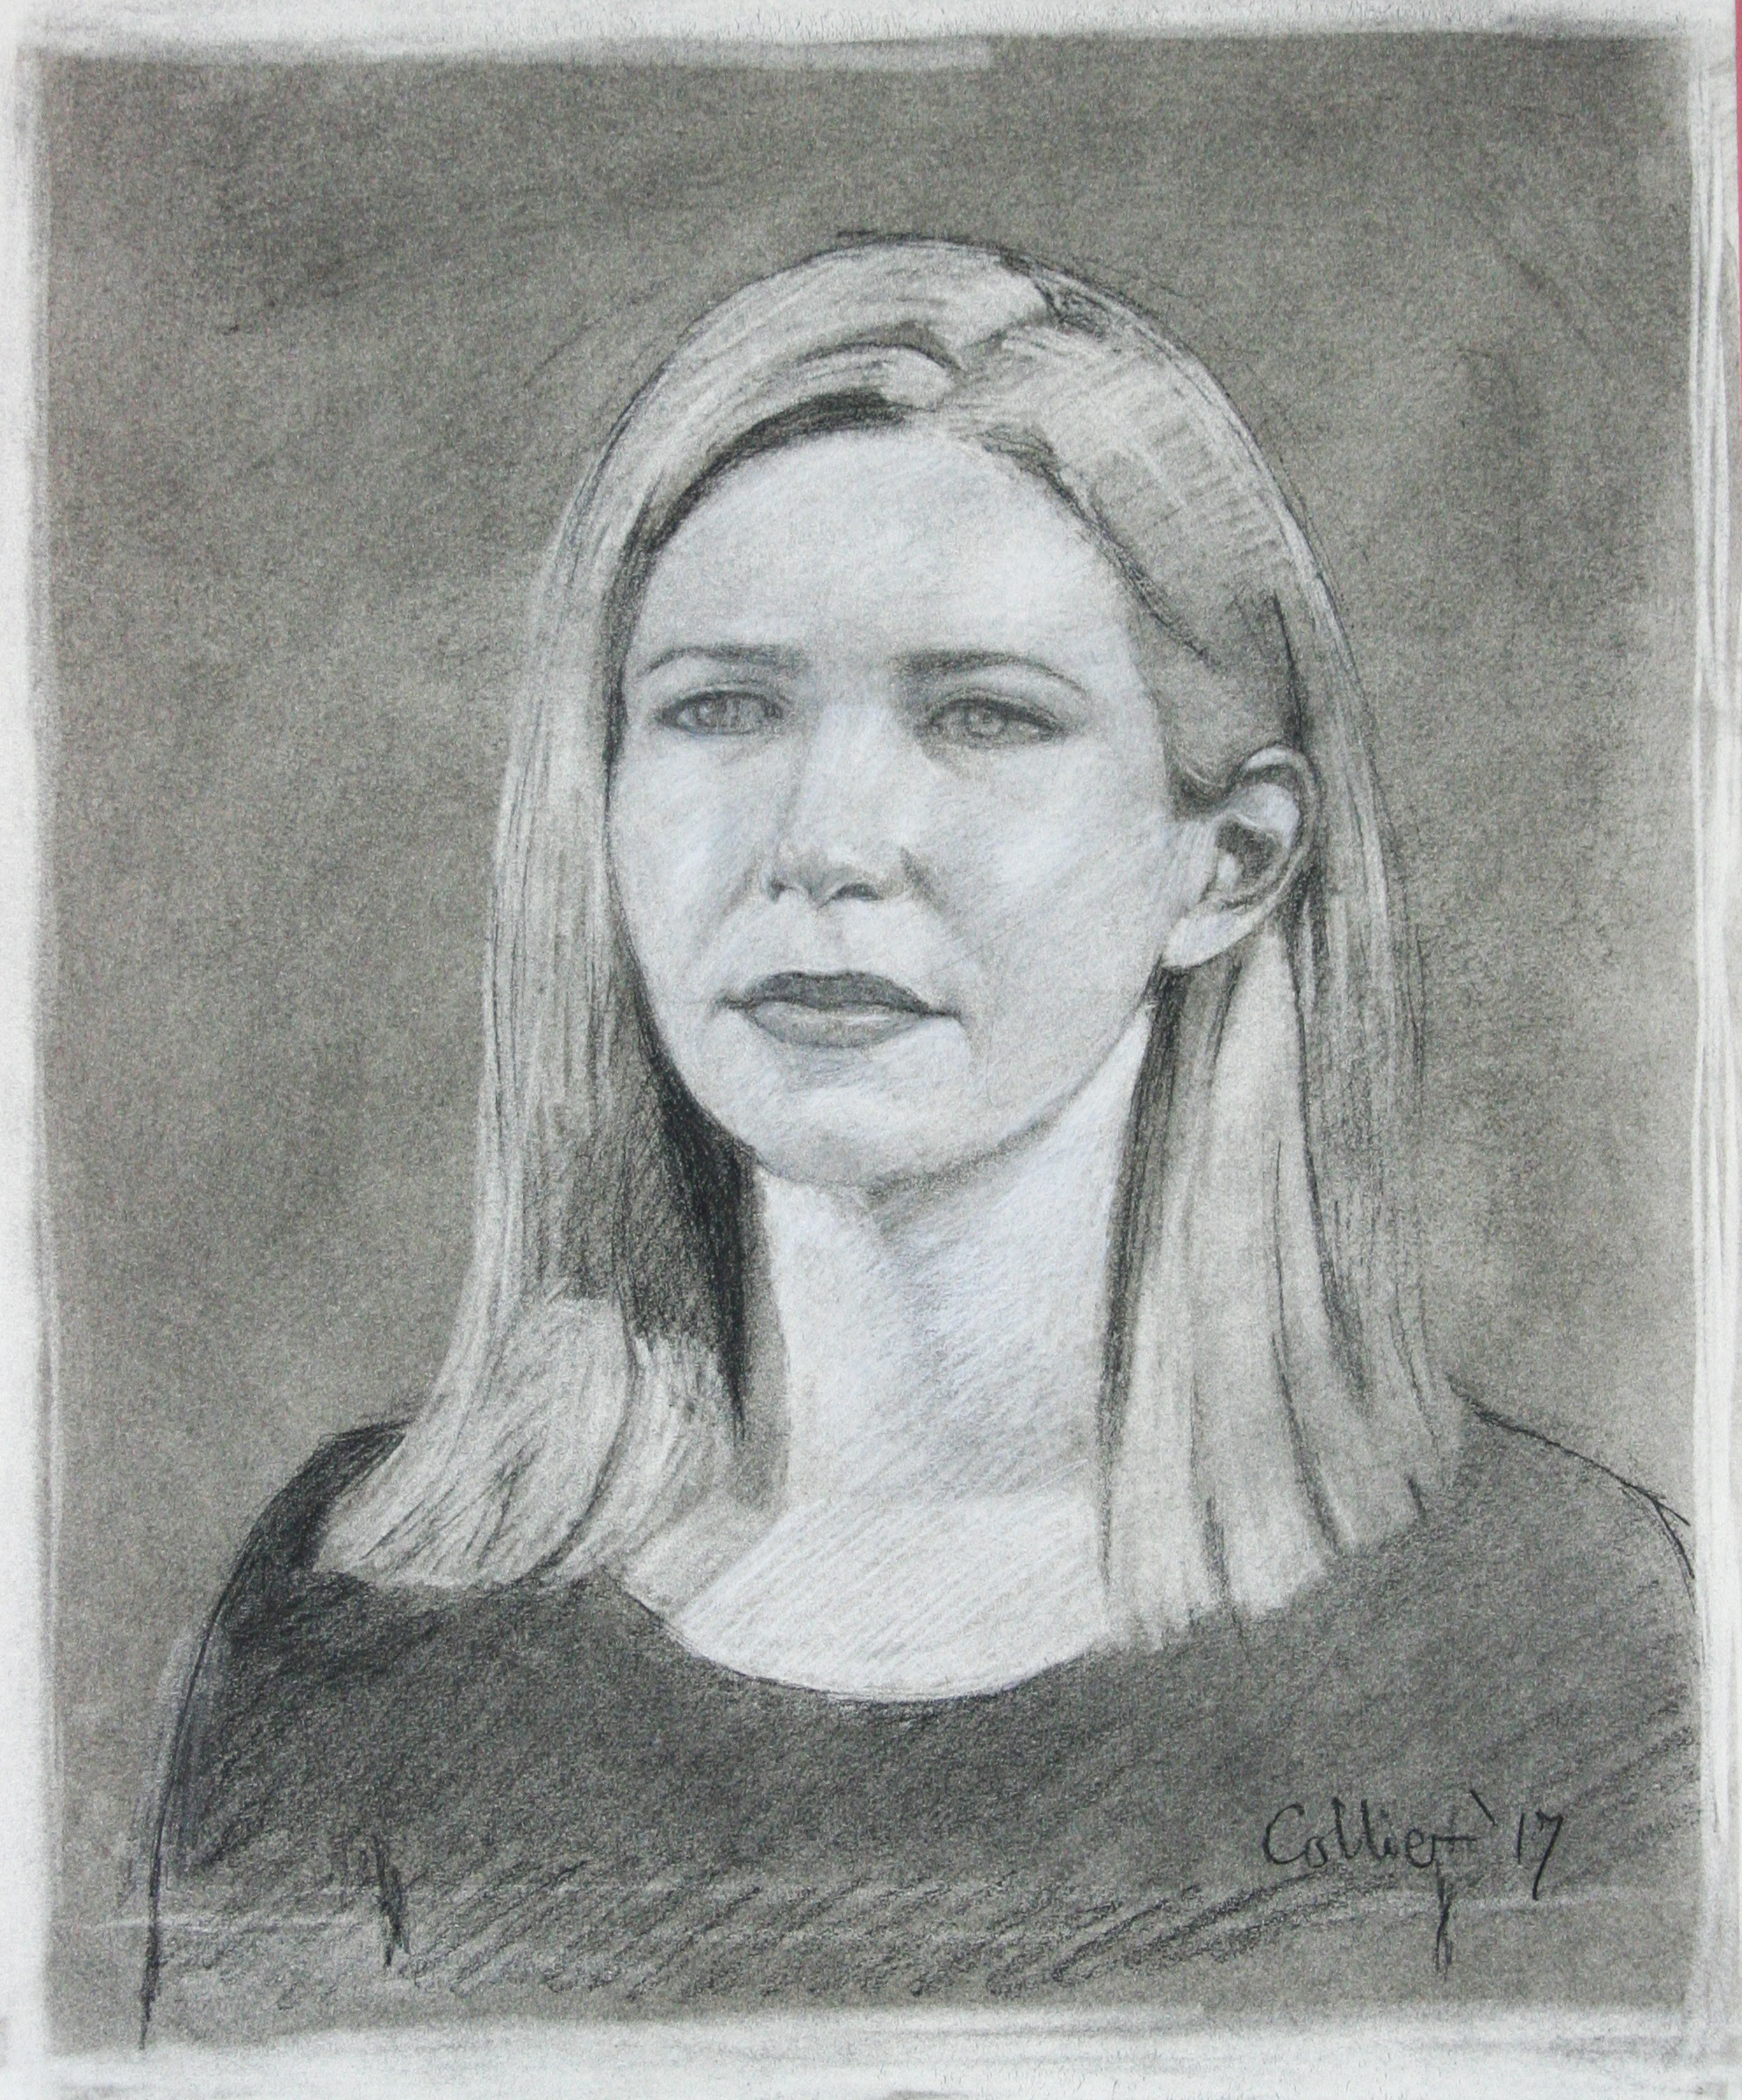 Howard Collier did this 3-hour charcoal drawing.